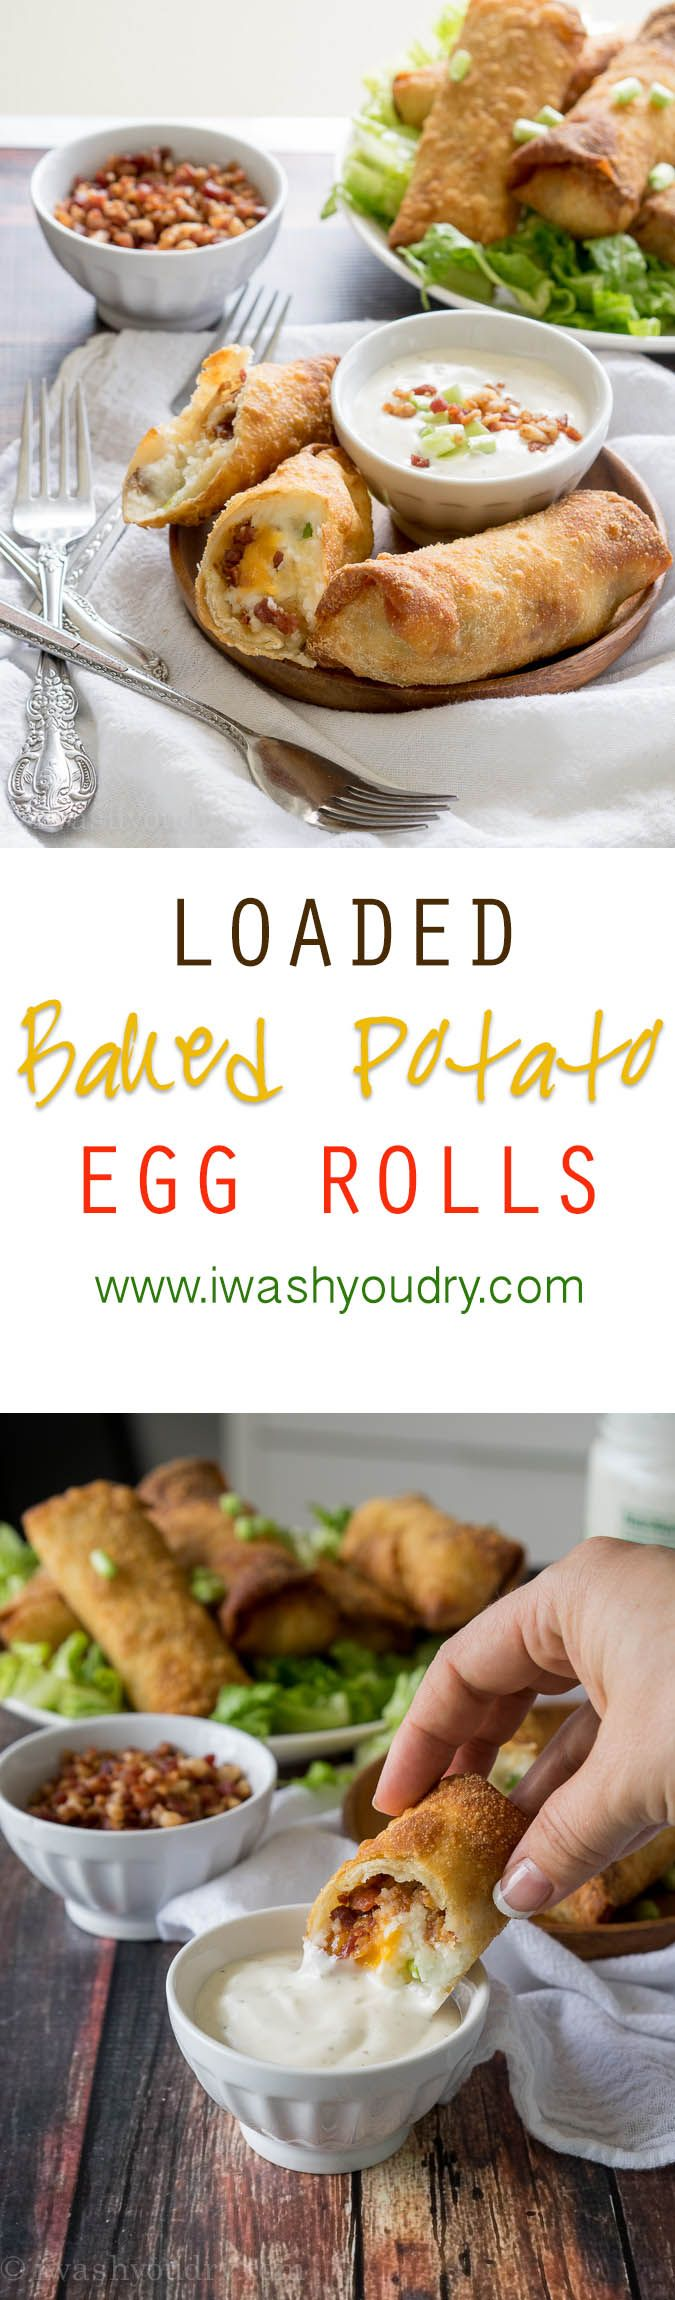 egg rolls french onion french fries loaded baked potatoes egg rolls ...